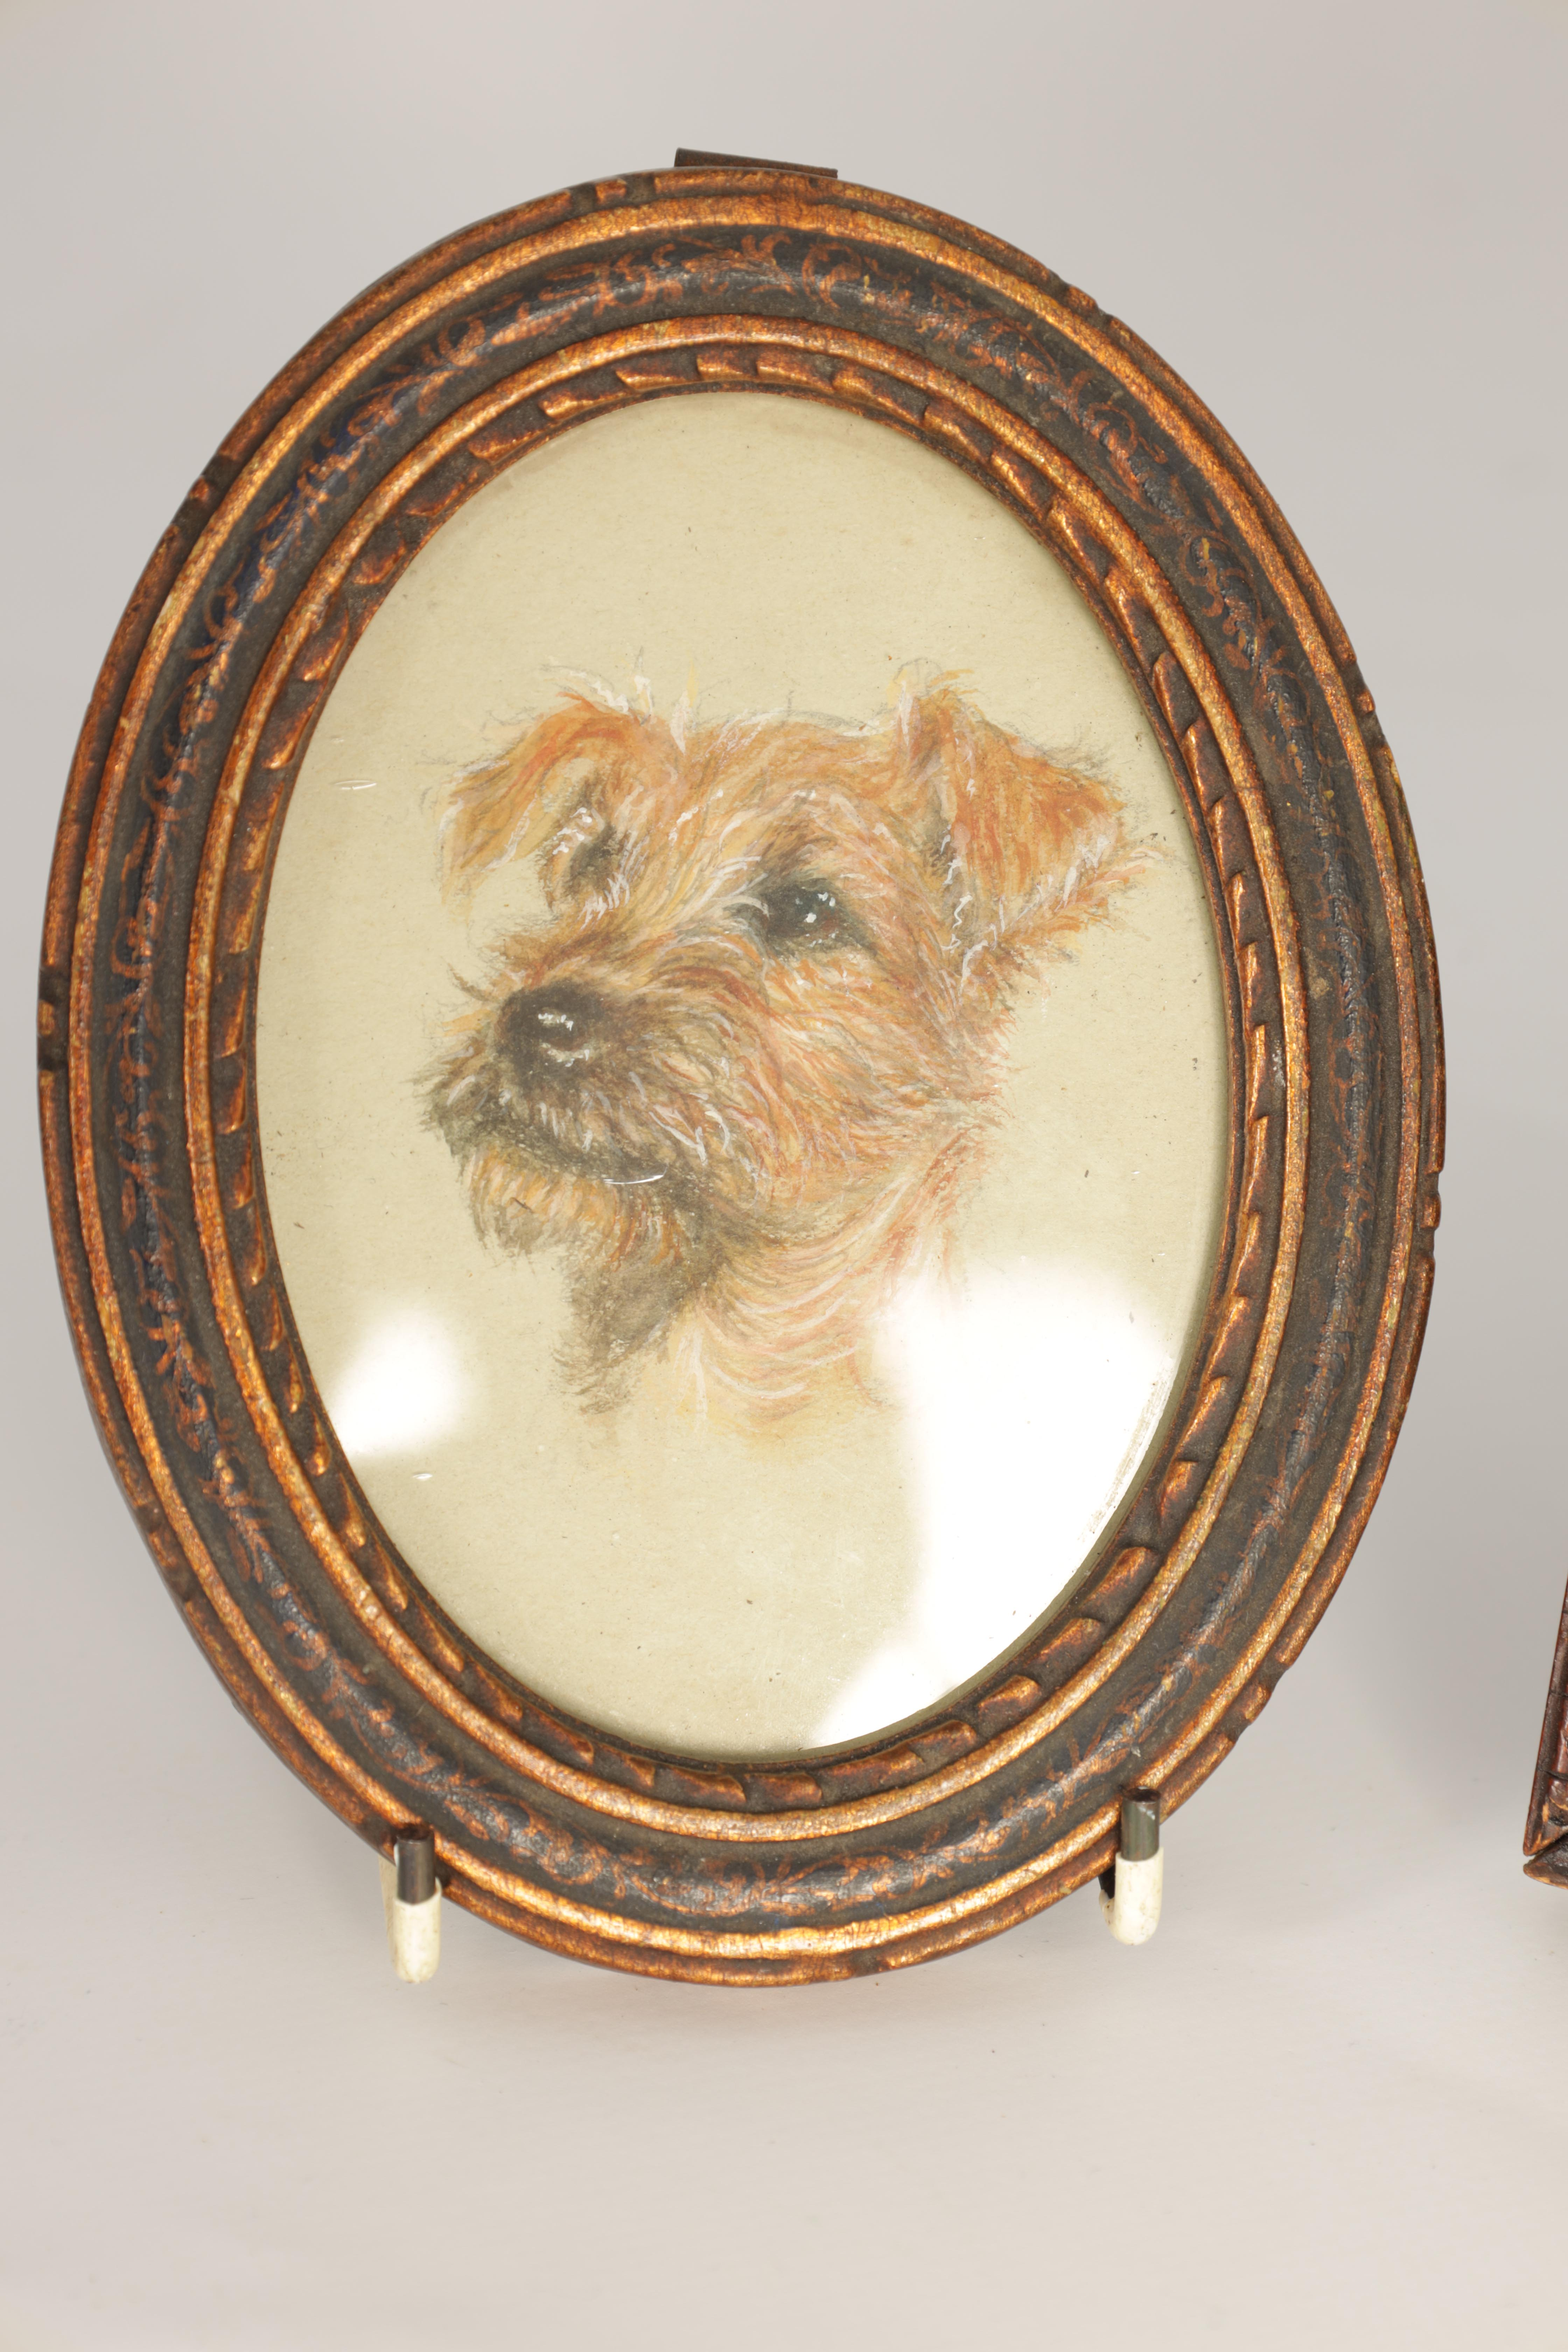 A LATE 19TH CENTURY WATERCOLOUR OVAL PORTRAIT OF A TERRIER 11cm high 8cm wide mounted in a lacquered - Image 3 of 14